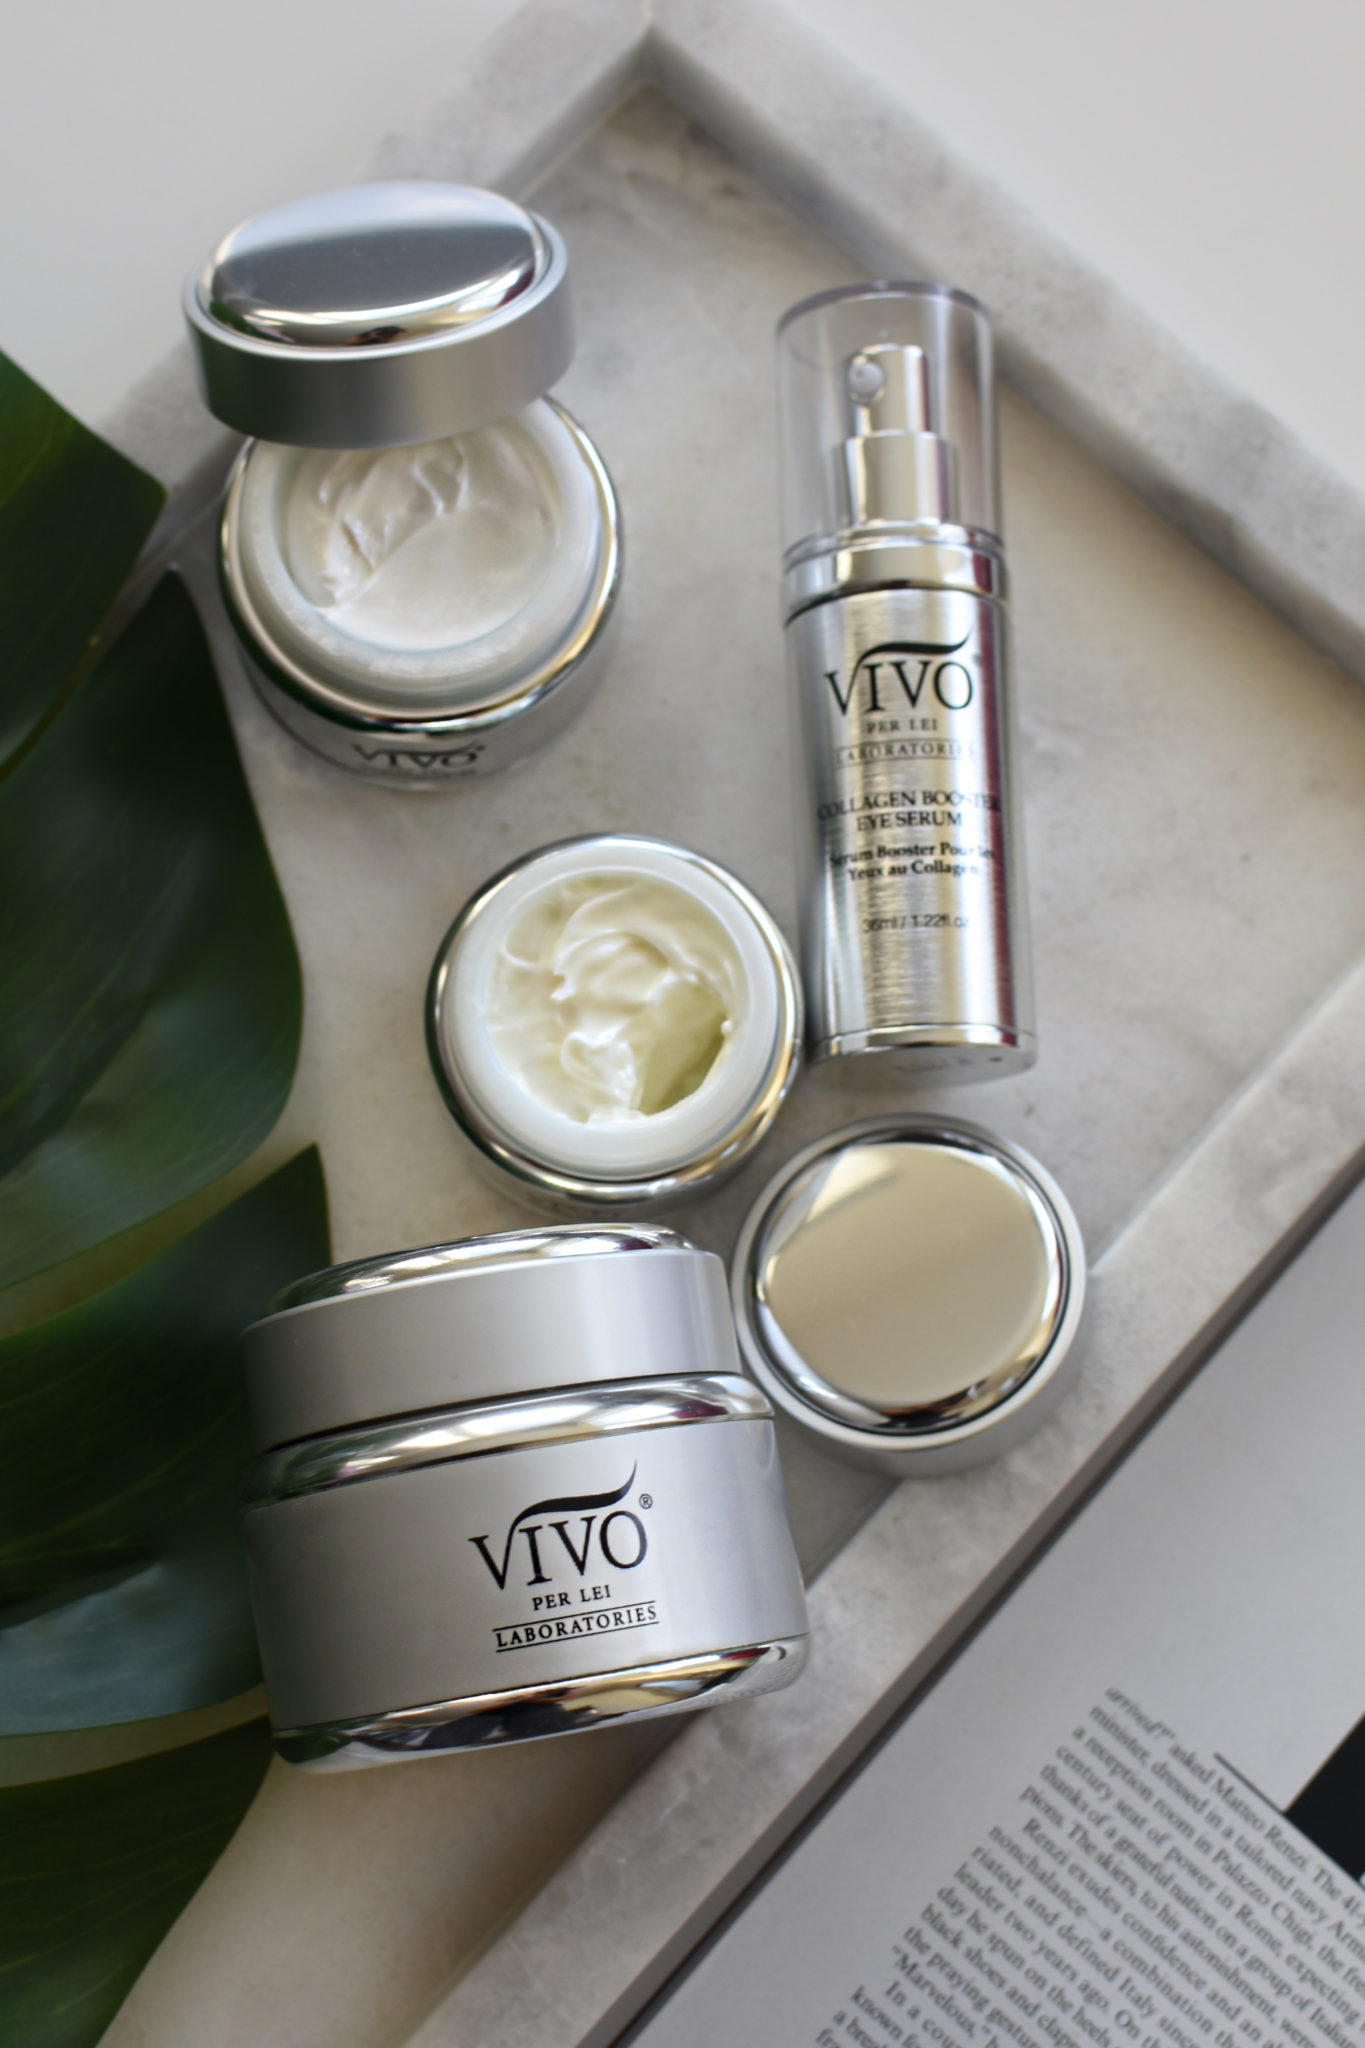 Vivo Per Lei collagen treatment